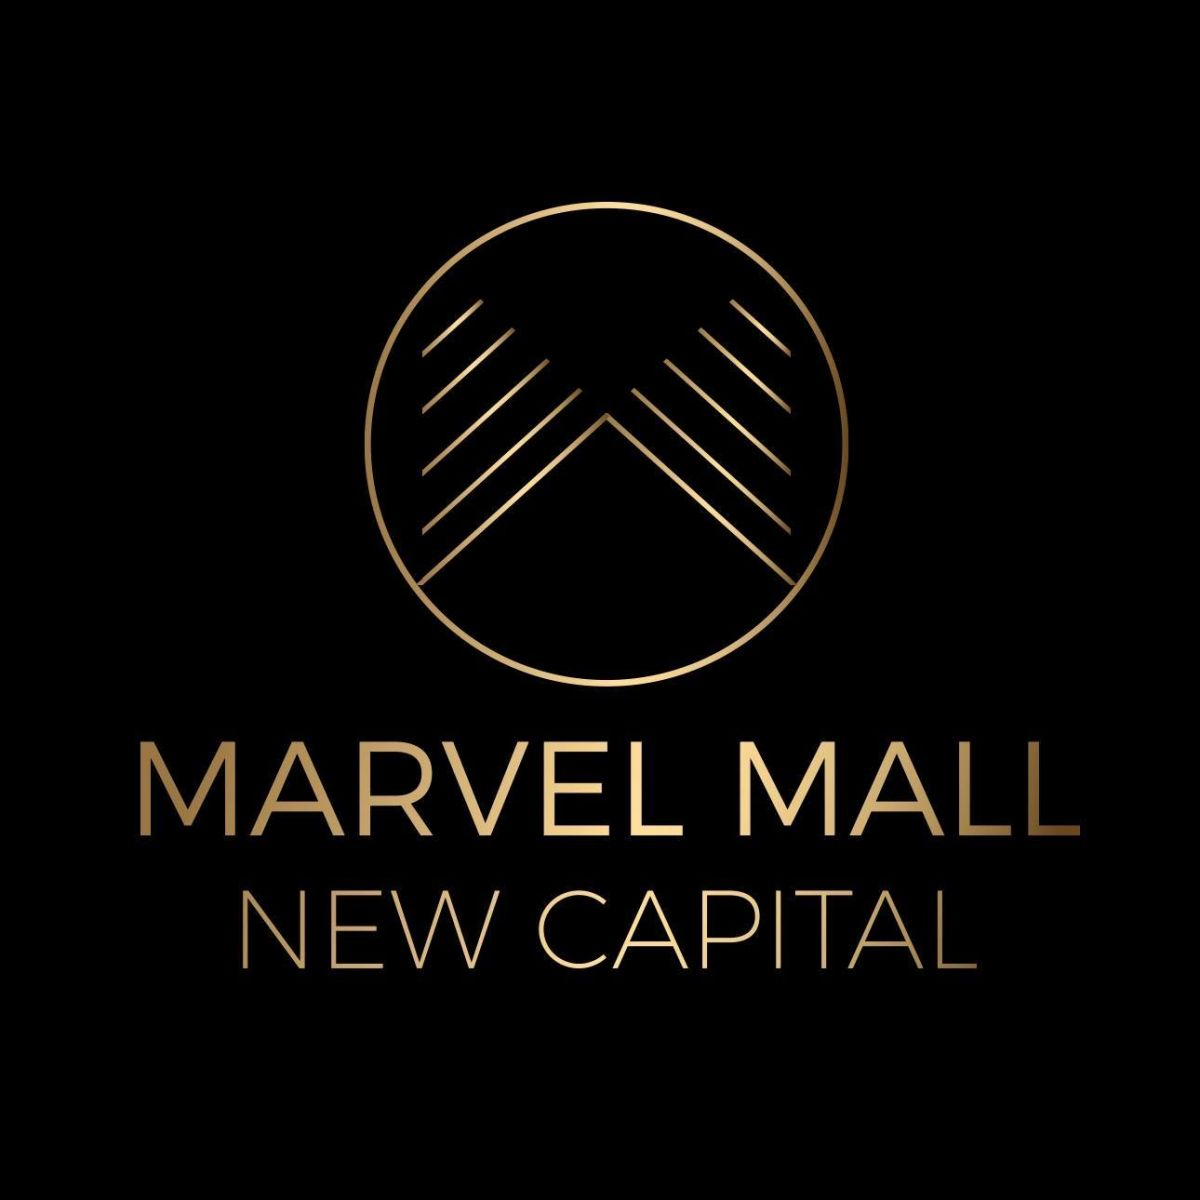 Marvel-Mall-